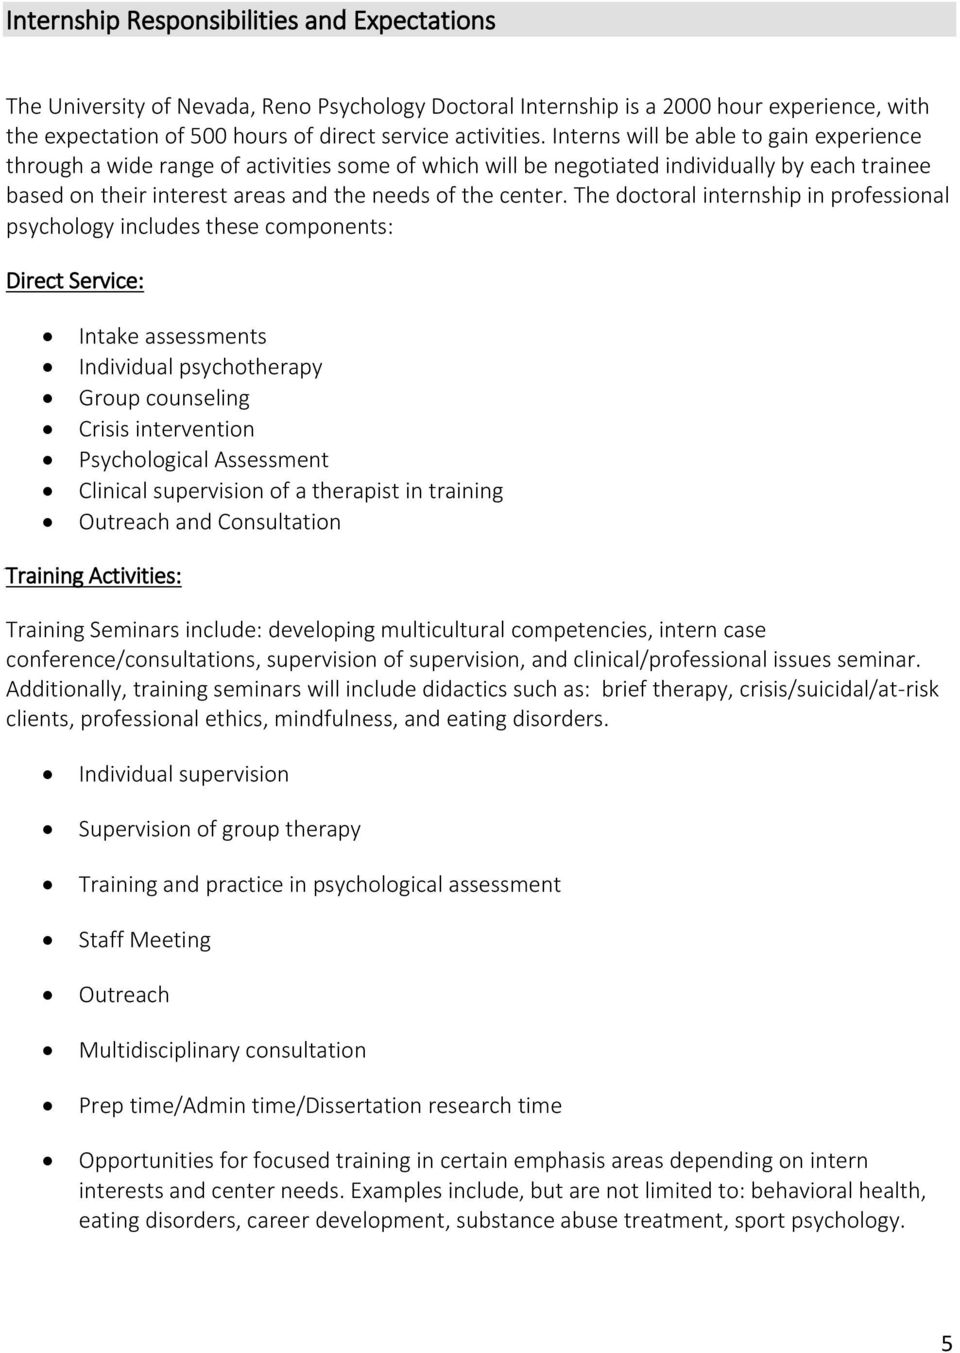 The doctoral internship in professional psychology includes these components: Direct Service: Intake assessments Individual psychotherapy Group counseling Crisis intervention Psychological Assessment